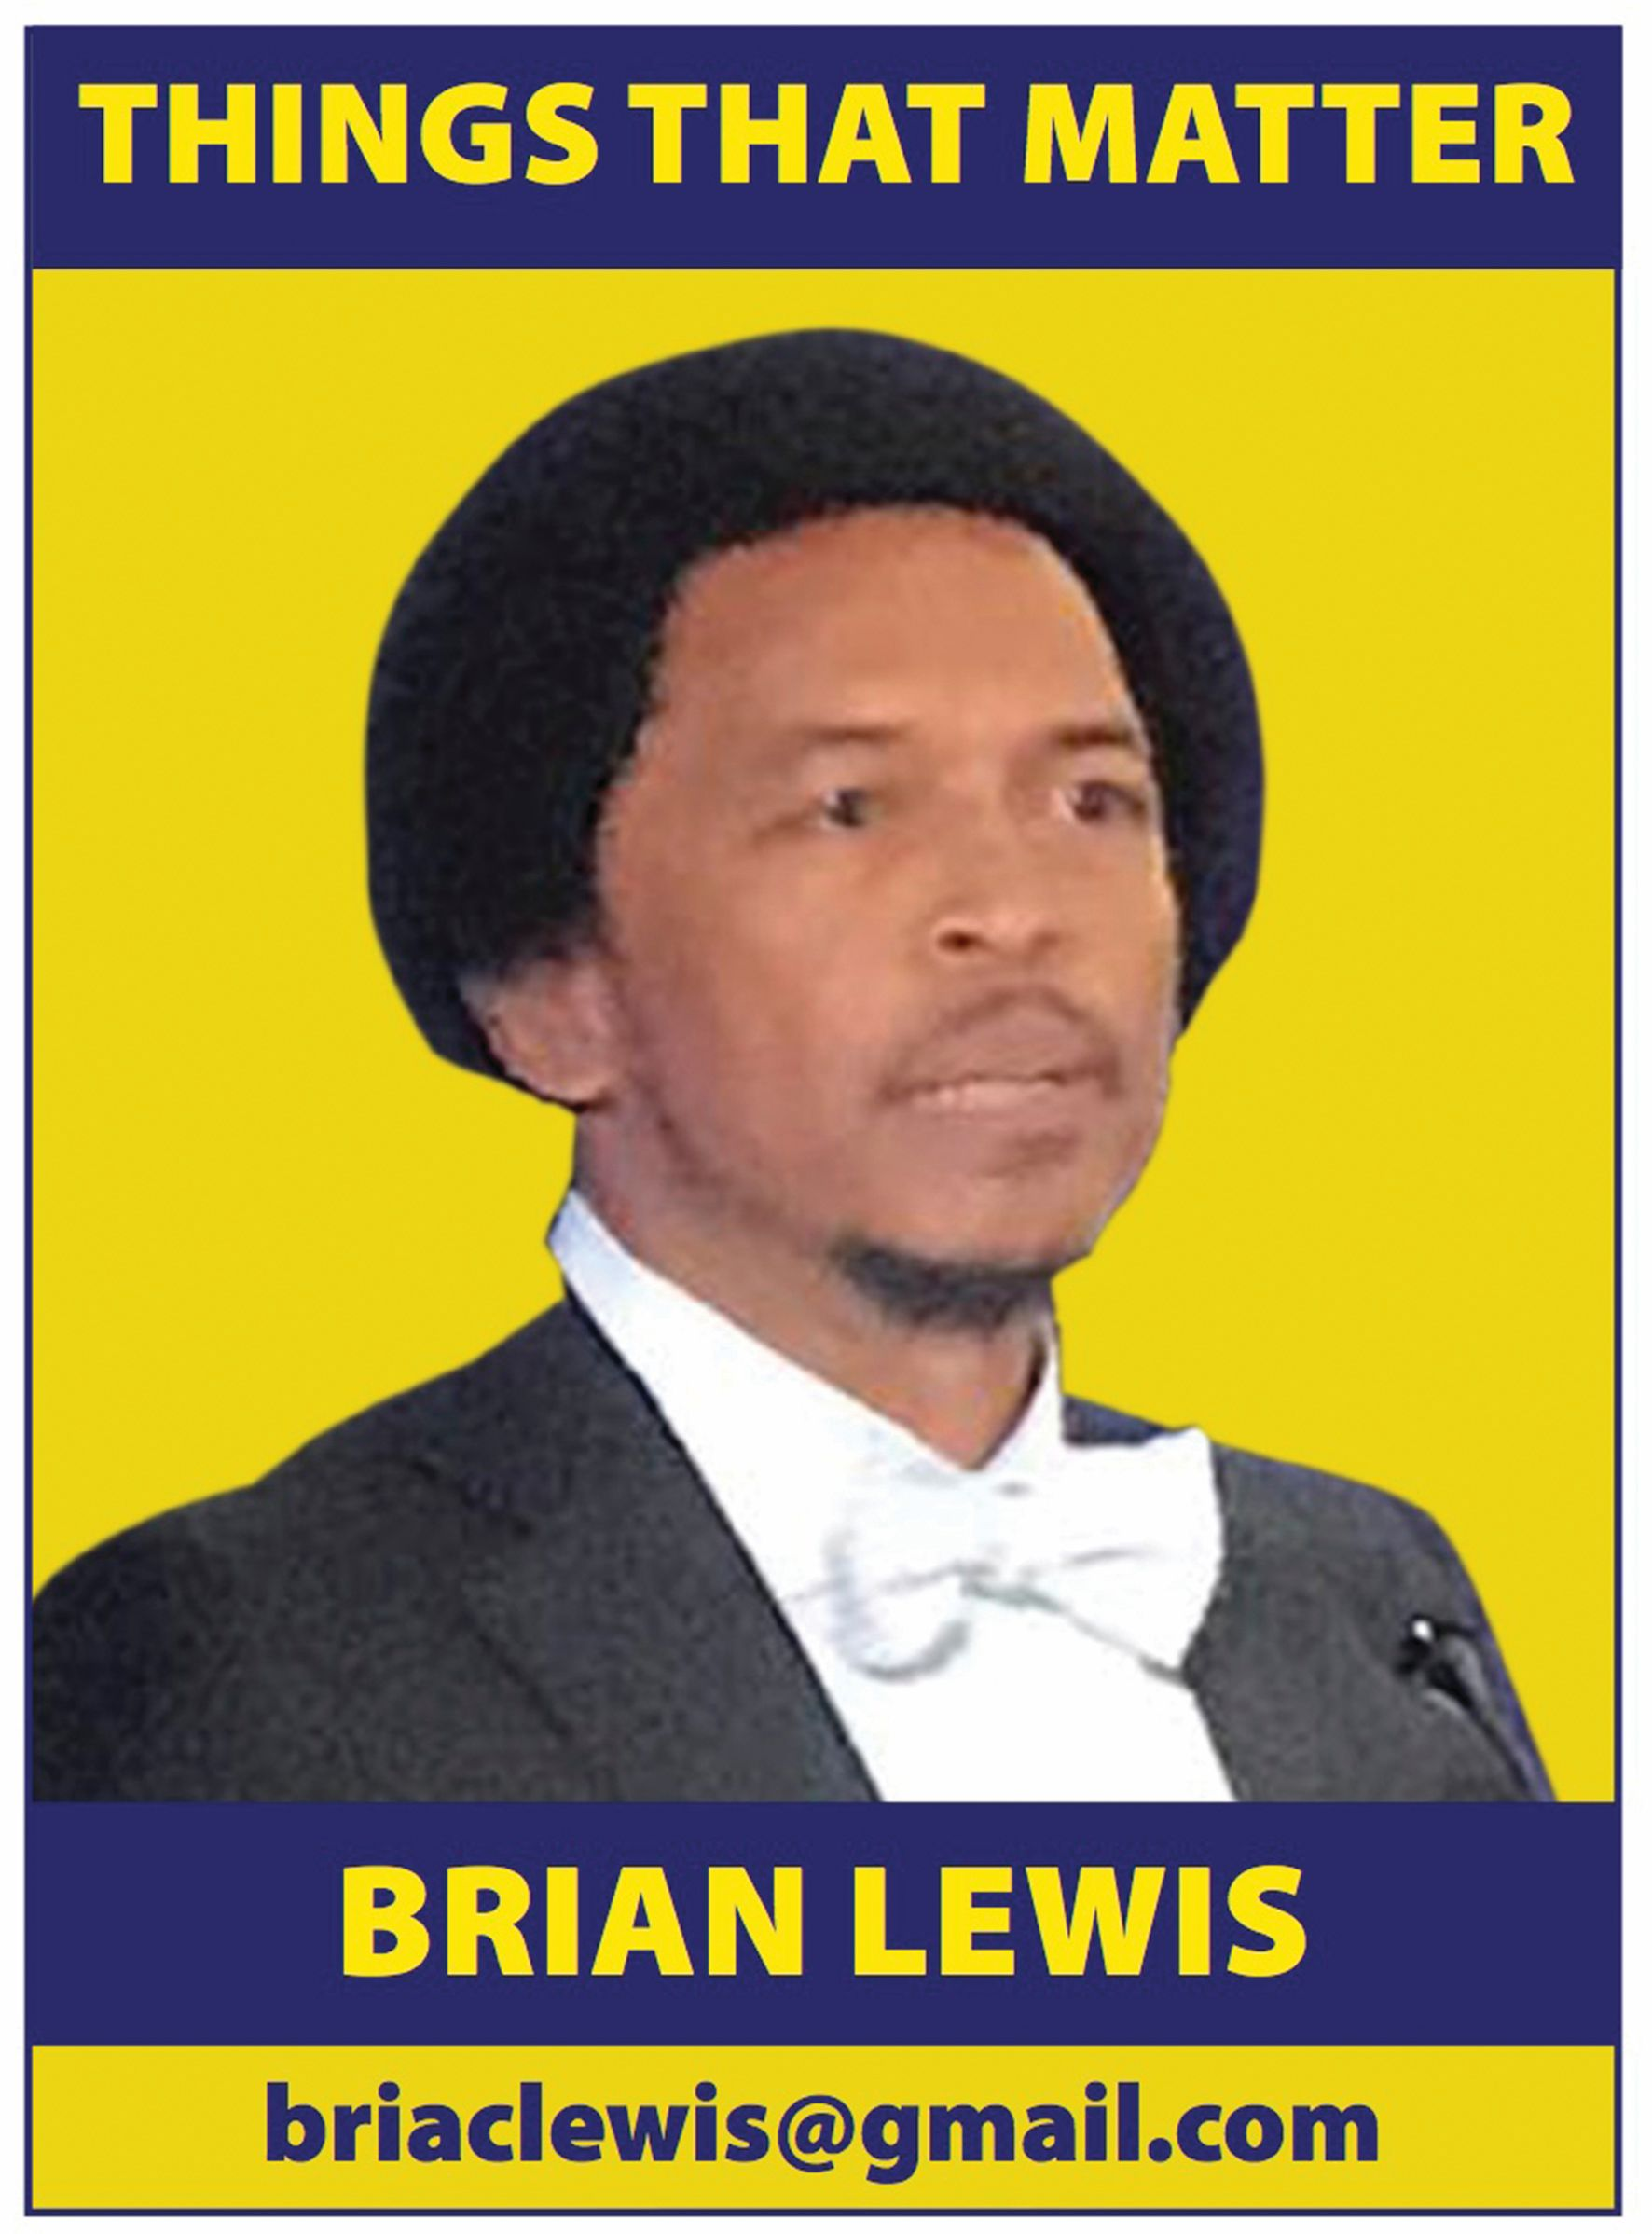 Mr. Brian Lewis, Things That Matter